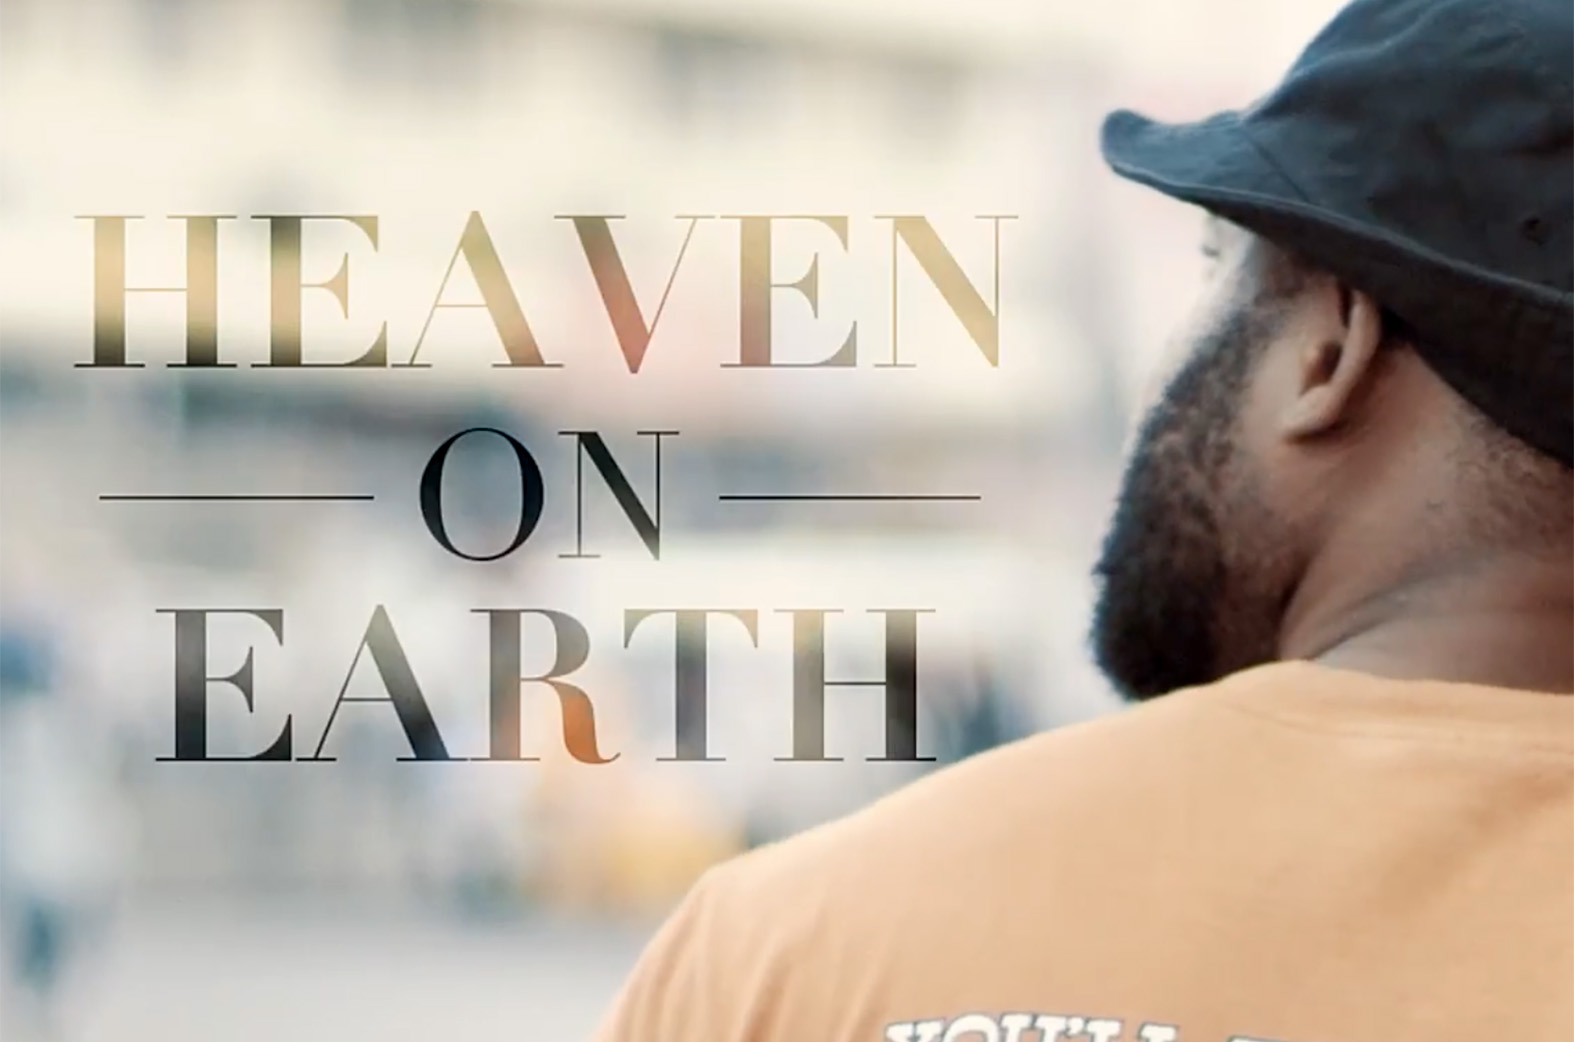 Heaven On Earth by RichHommie D & Mr. Mageek